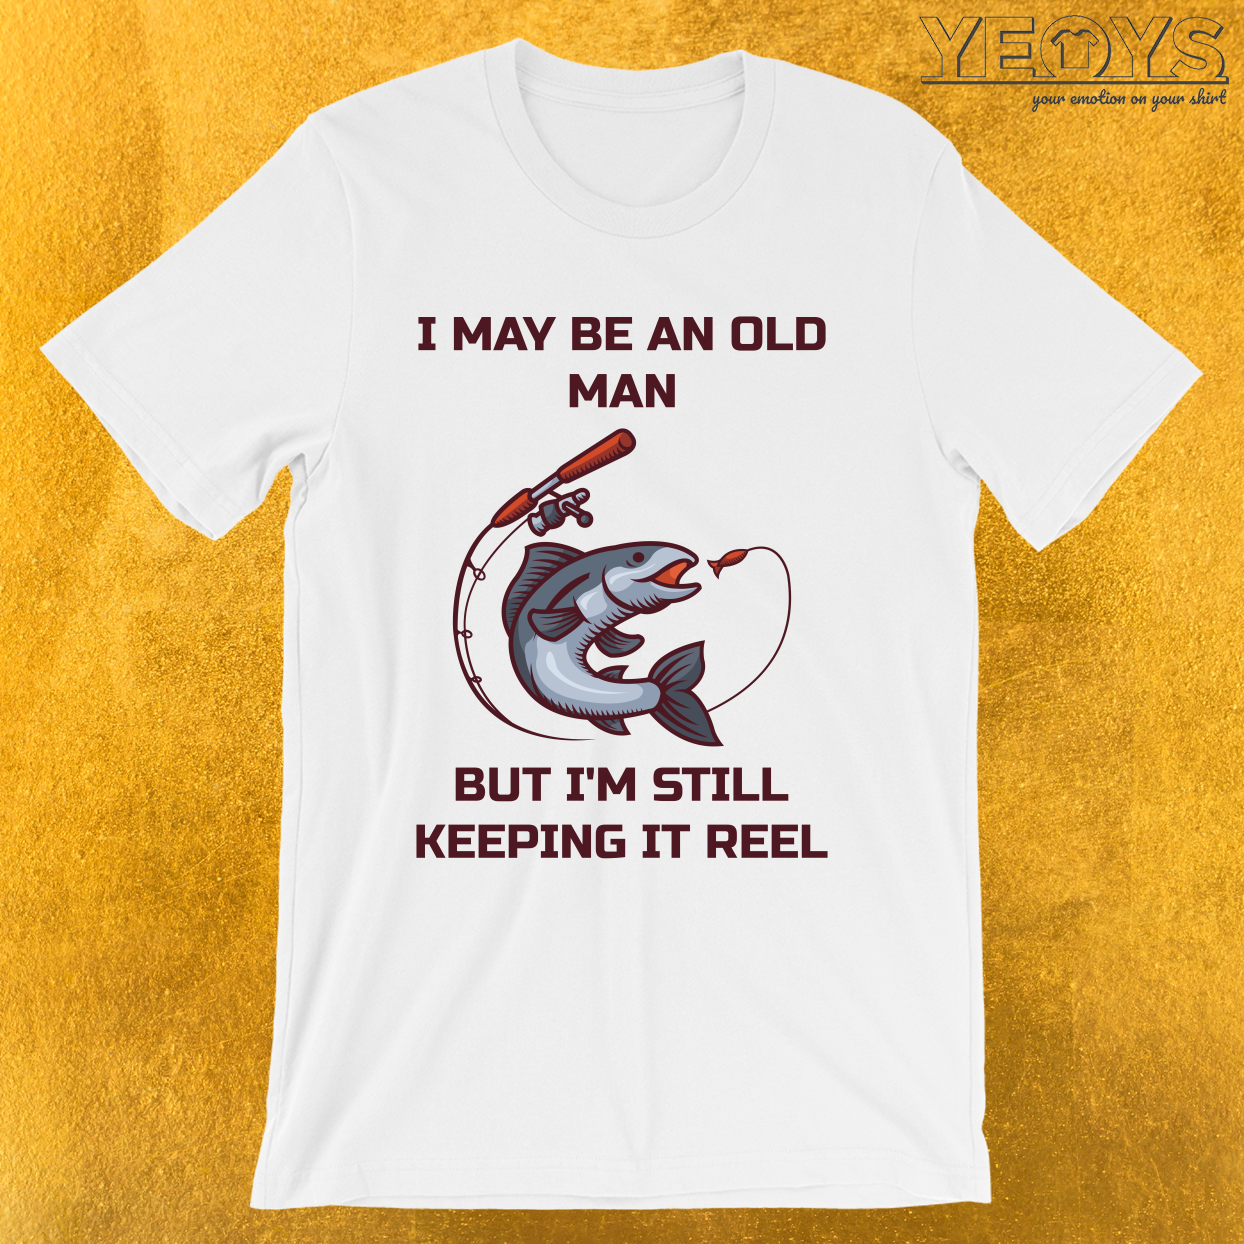 I May Be Old But I'm Still Keeping It Reel – Old Fisherman Tee